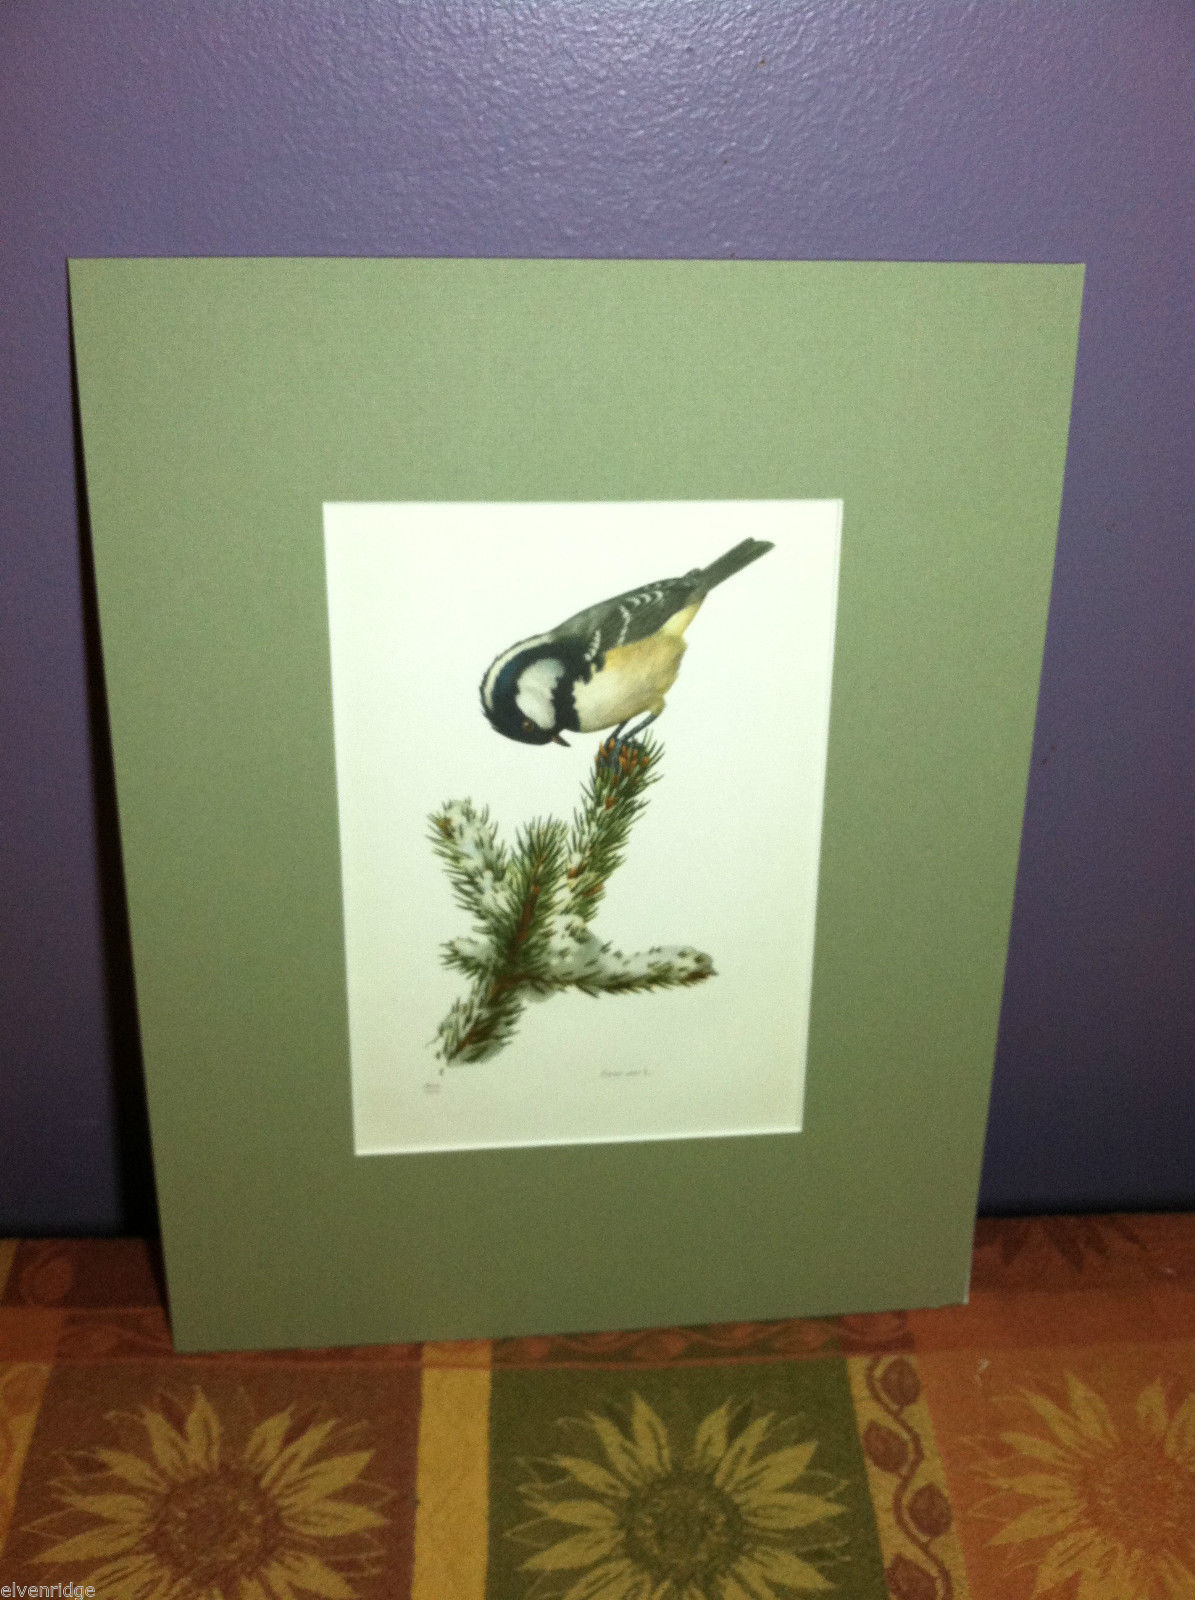 "Print of Coal Tit/Parus Ater ""The Most Beautiful Birds"" Framed Wall Art"